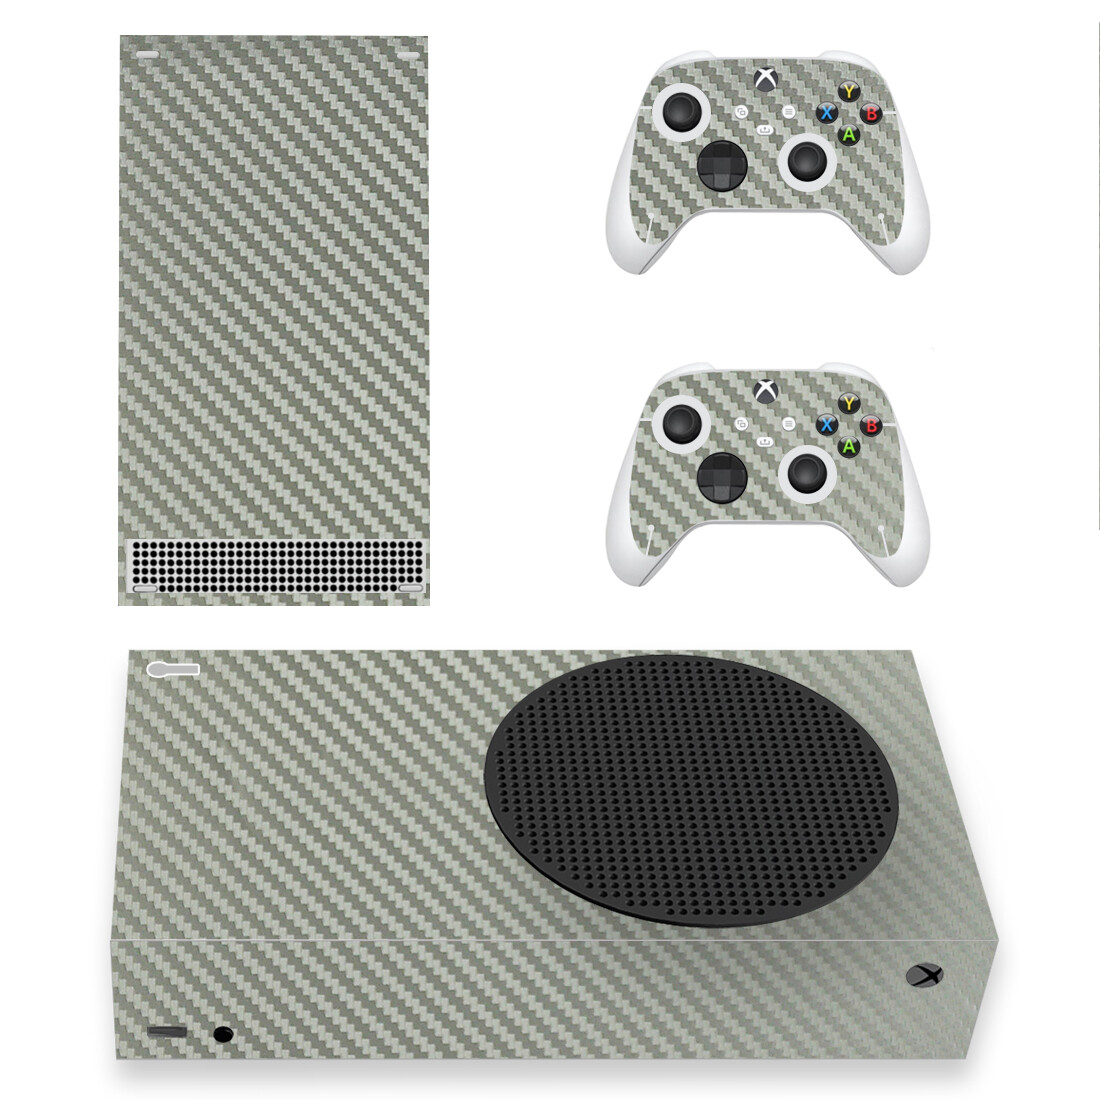 YSXSS0712 Grey Carbon Skin Sticker Decal For Xbox Series S